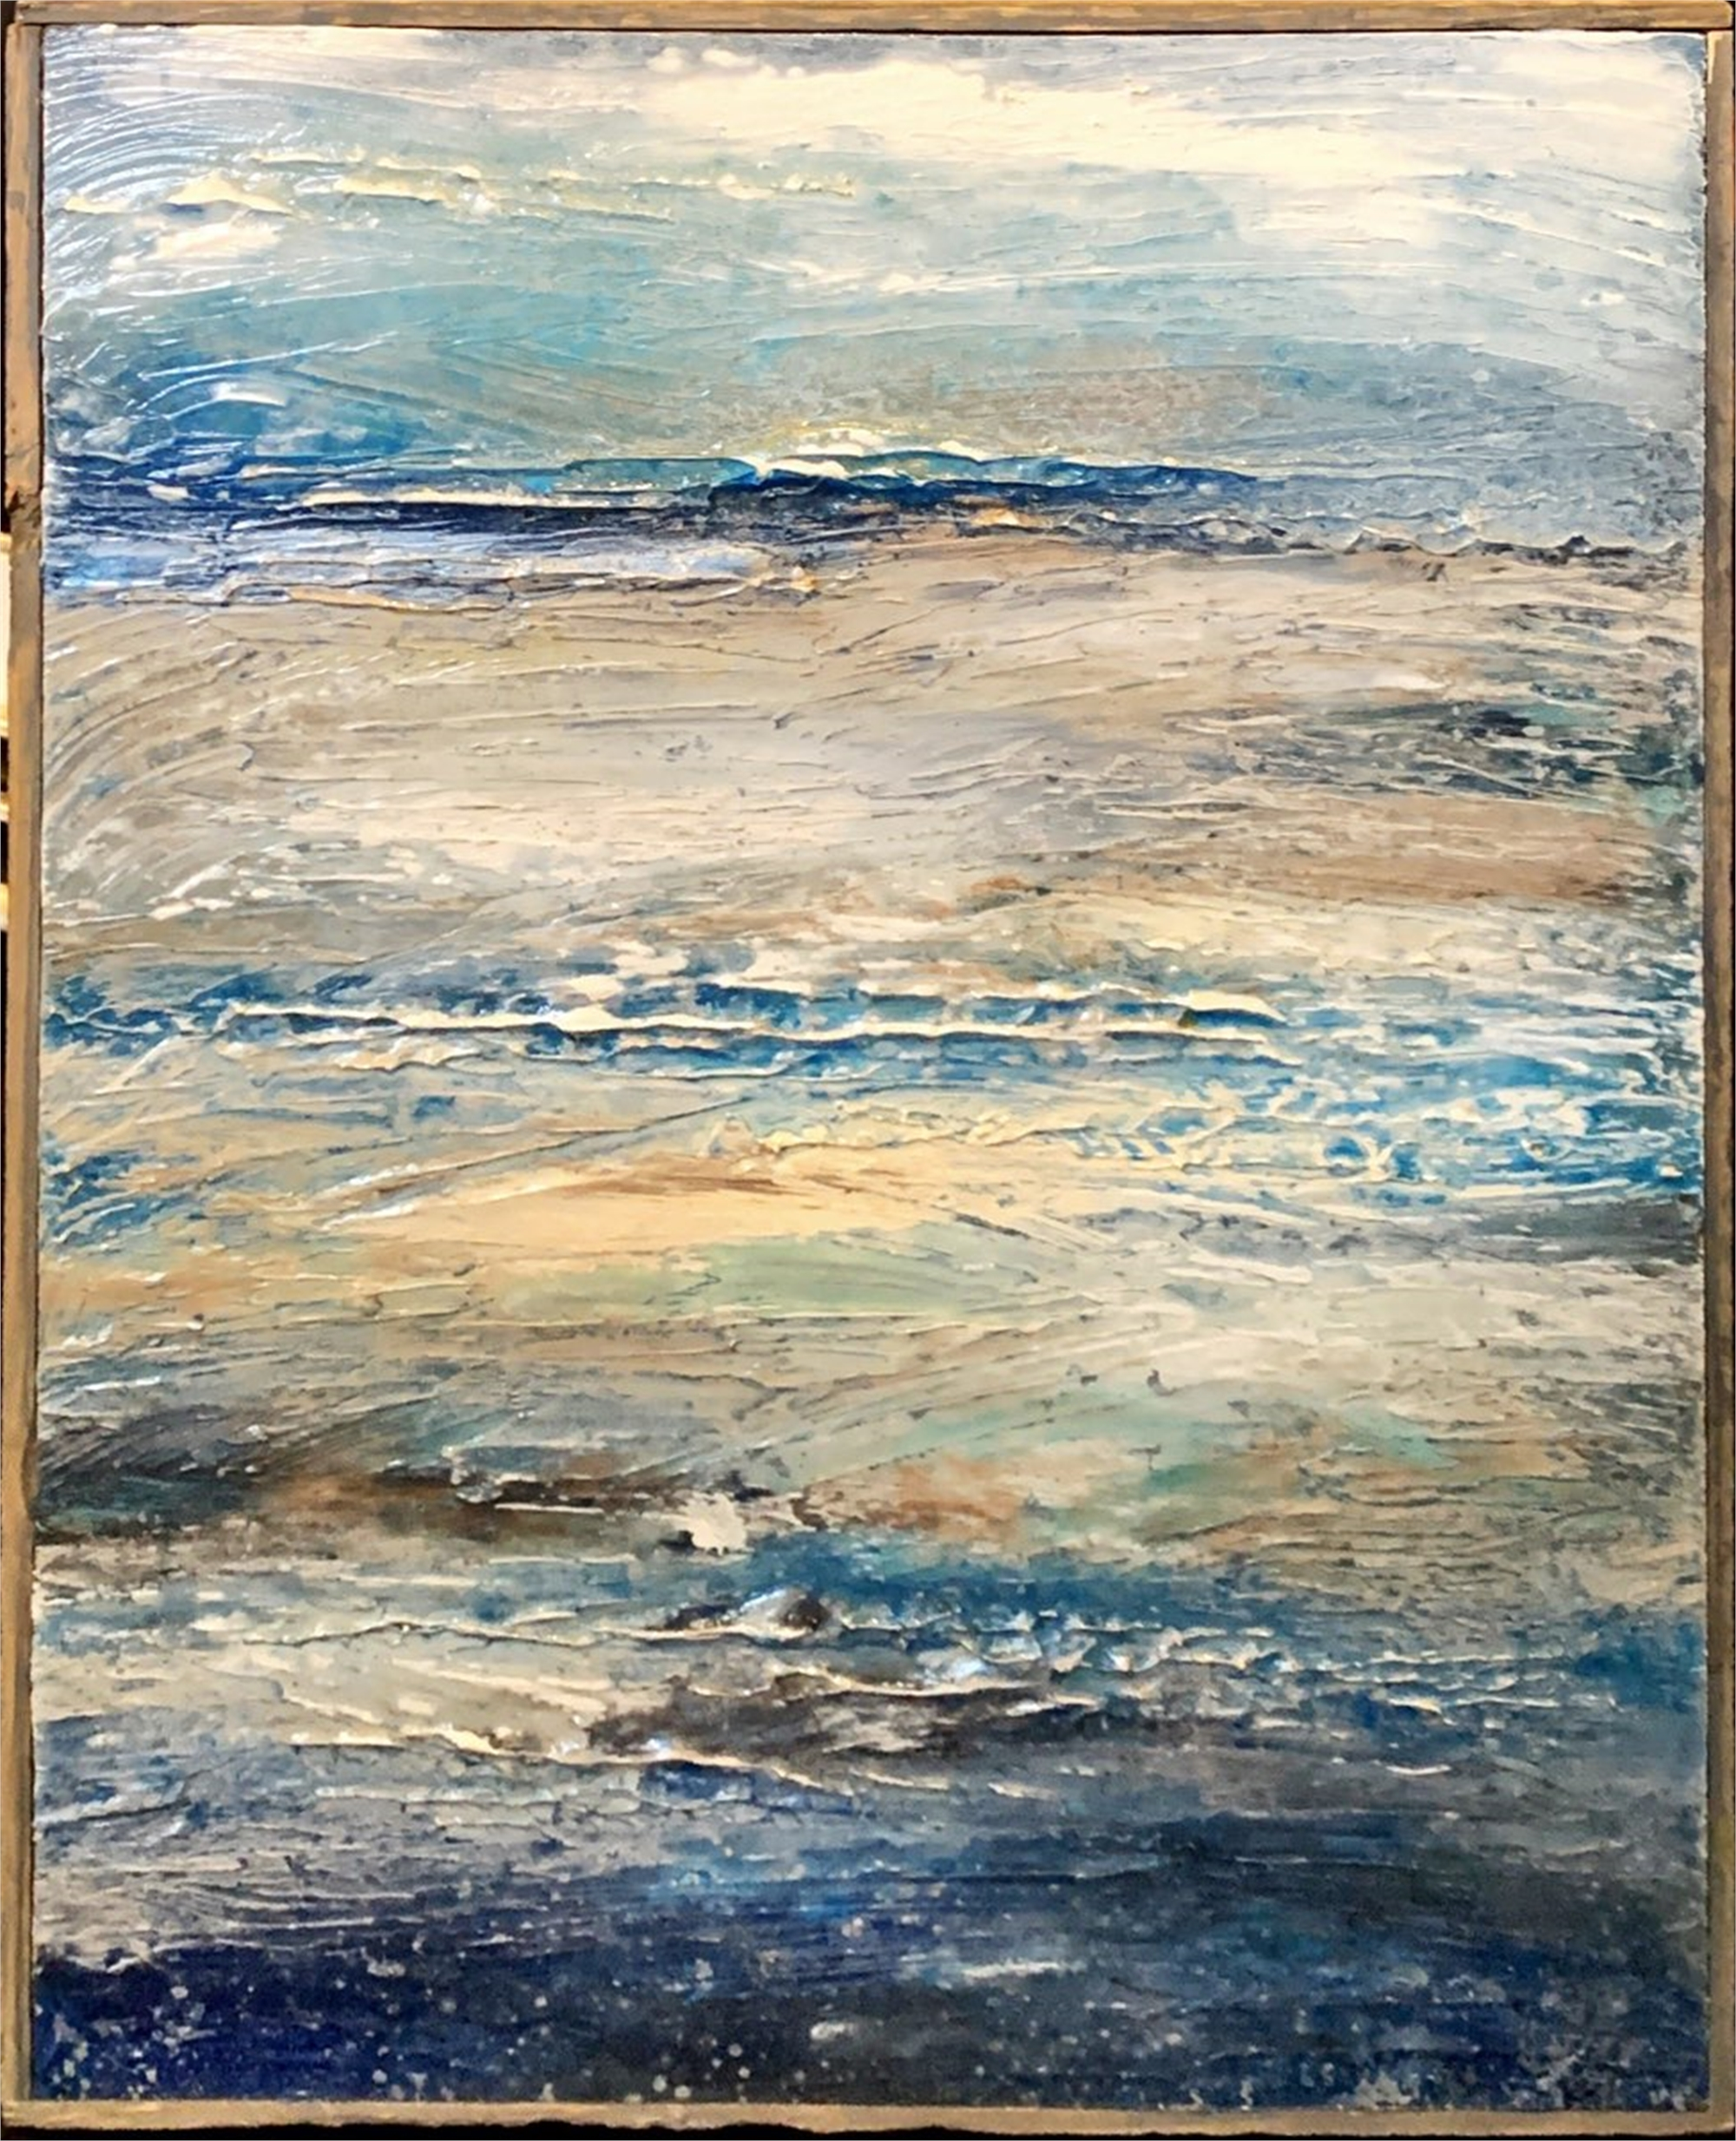 Piece by Peace 2 by Lisa Wilson